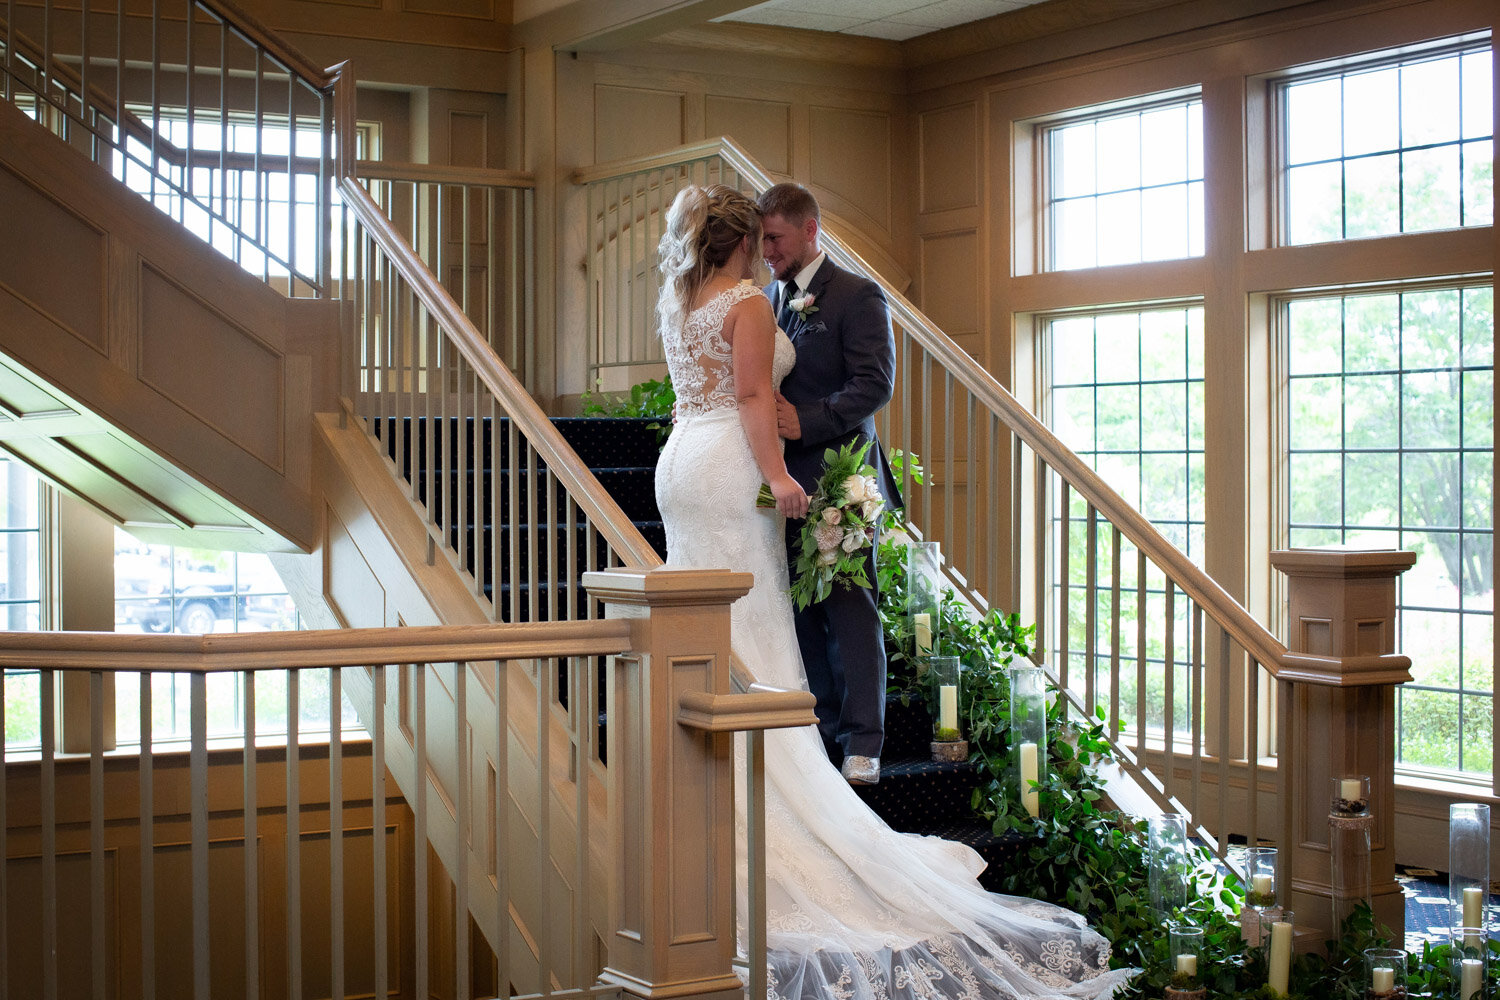 09-rush-creek-golf-course-bride-groom-portrait-grand-staircase-mahonenphotography-mn-wedding-photographer.jpg